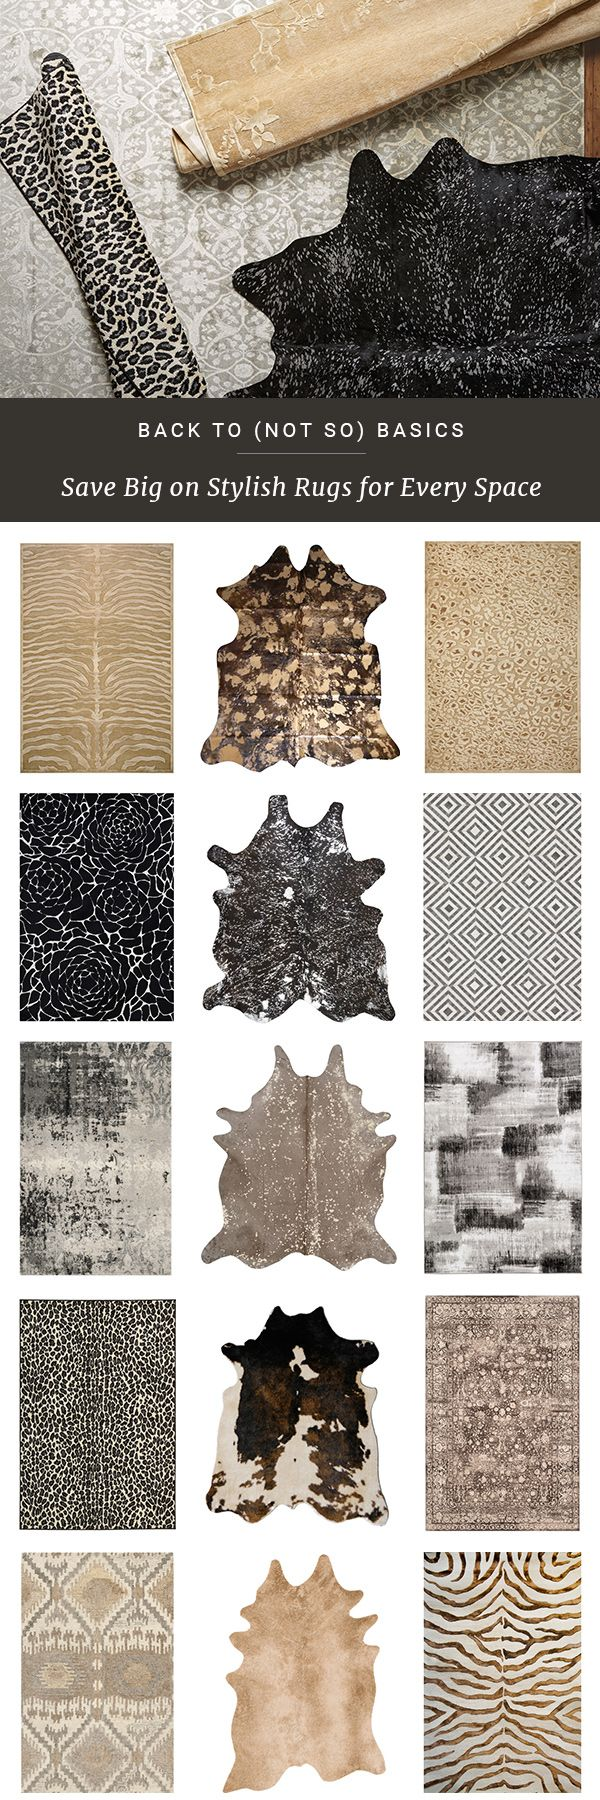 With unique shapes and natural elements, simple is beautiful. Rugs with sophisticated color and classic design are the perfect fit for any room. Get inspired at jossandmain.com